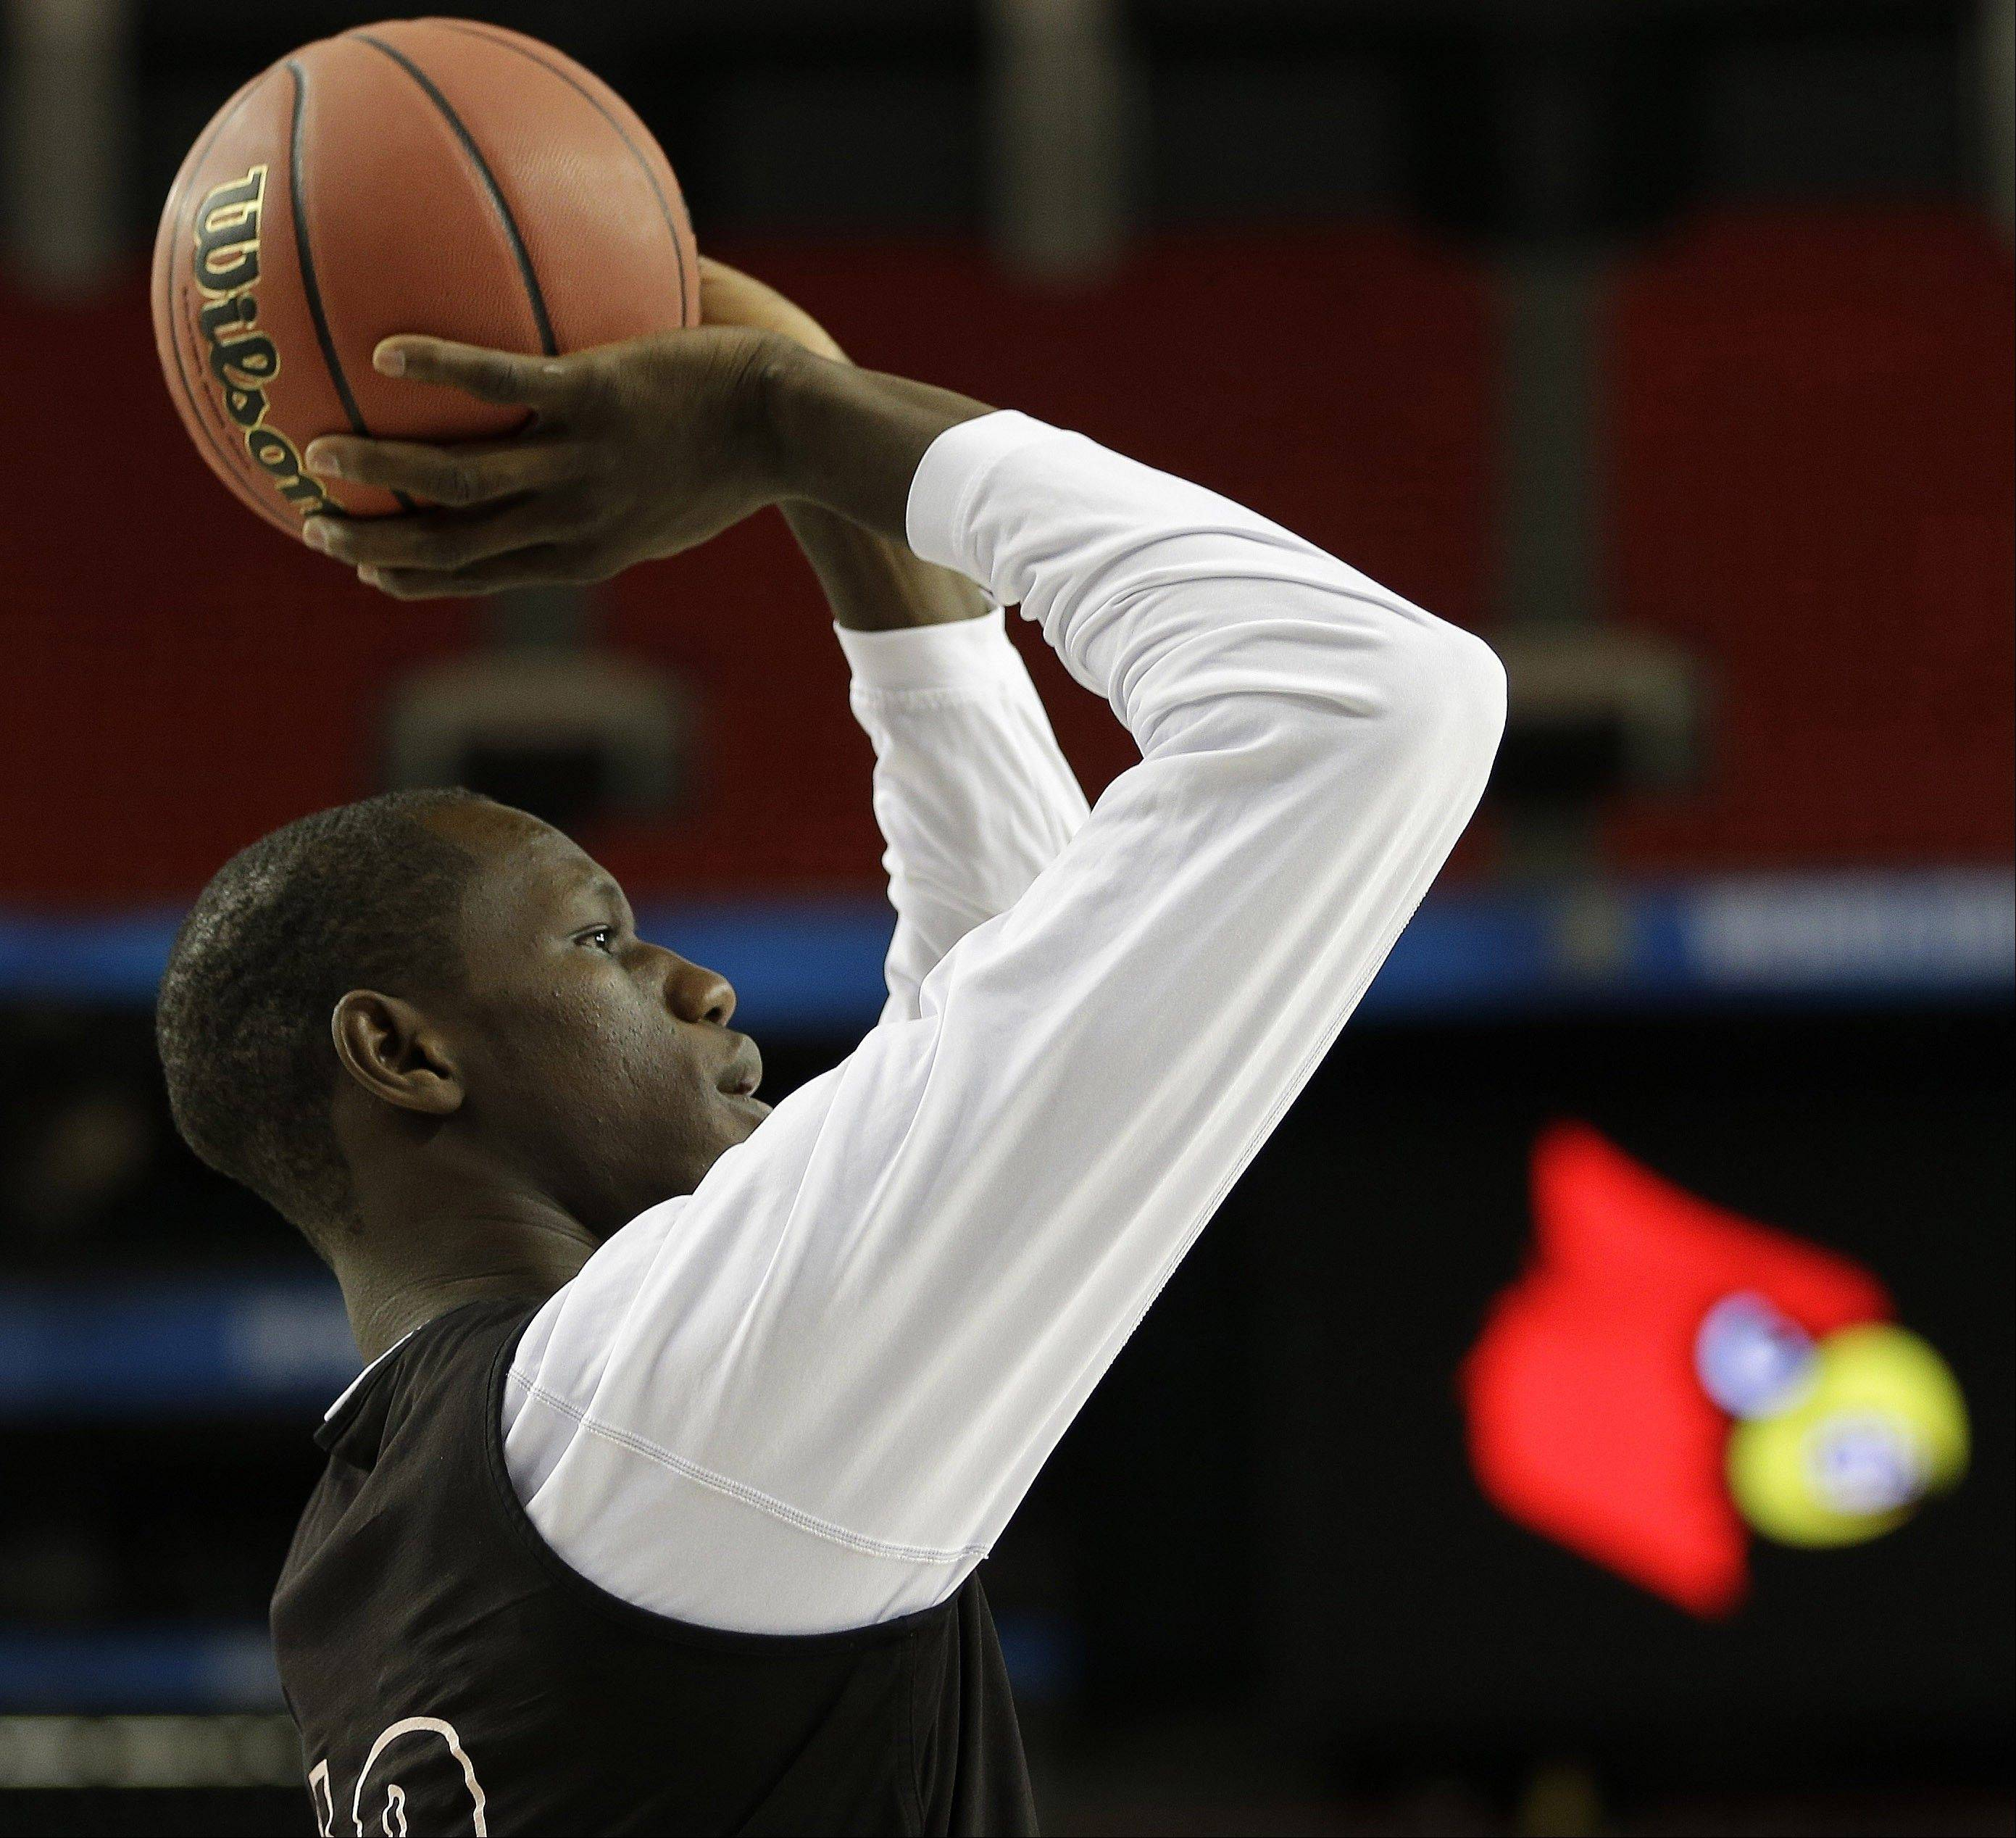 Louisville center Gorgui Dieng could be available when the Bulls make their first-round pick in Thursday's NBA draft, and could give Chicago a nice backup to Joakim Noah.